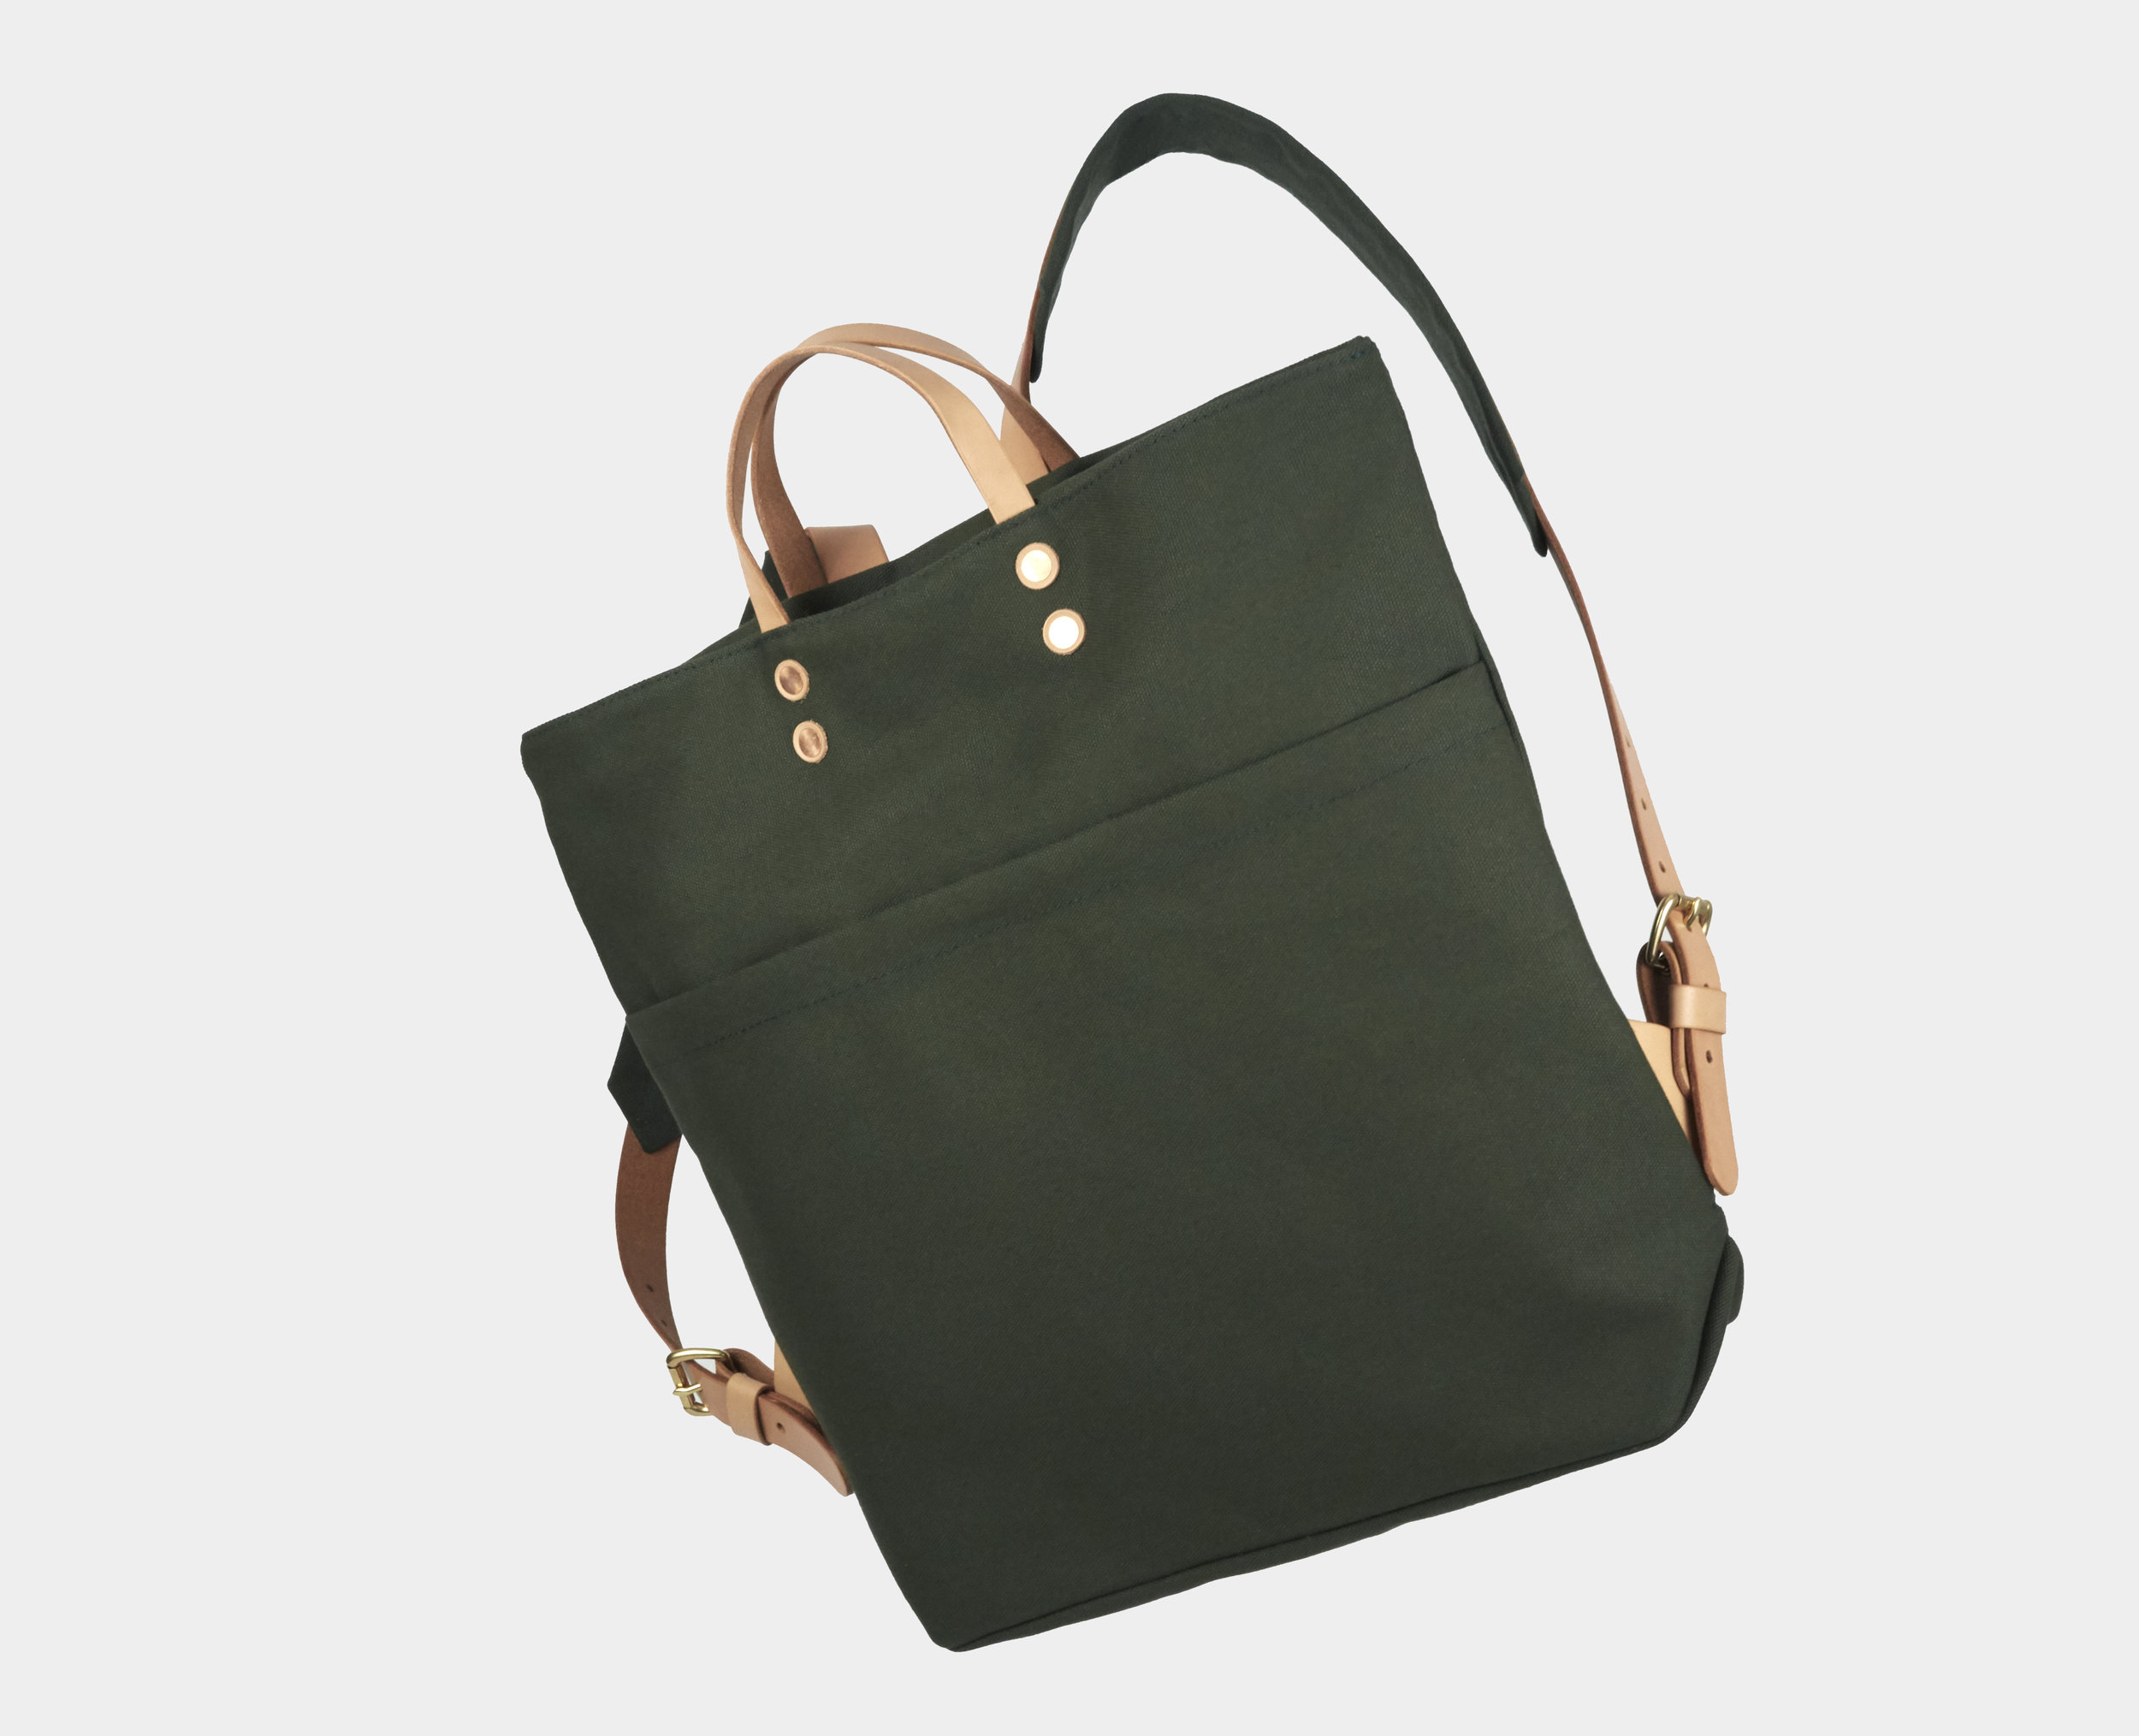 Backpack_Tote-Olive-FrontAngle.jpg